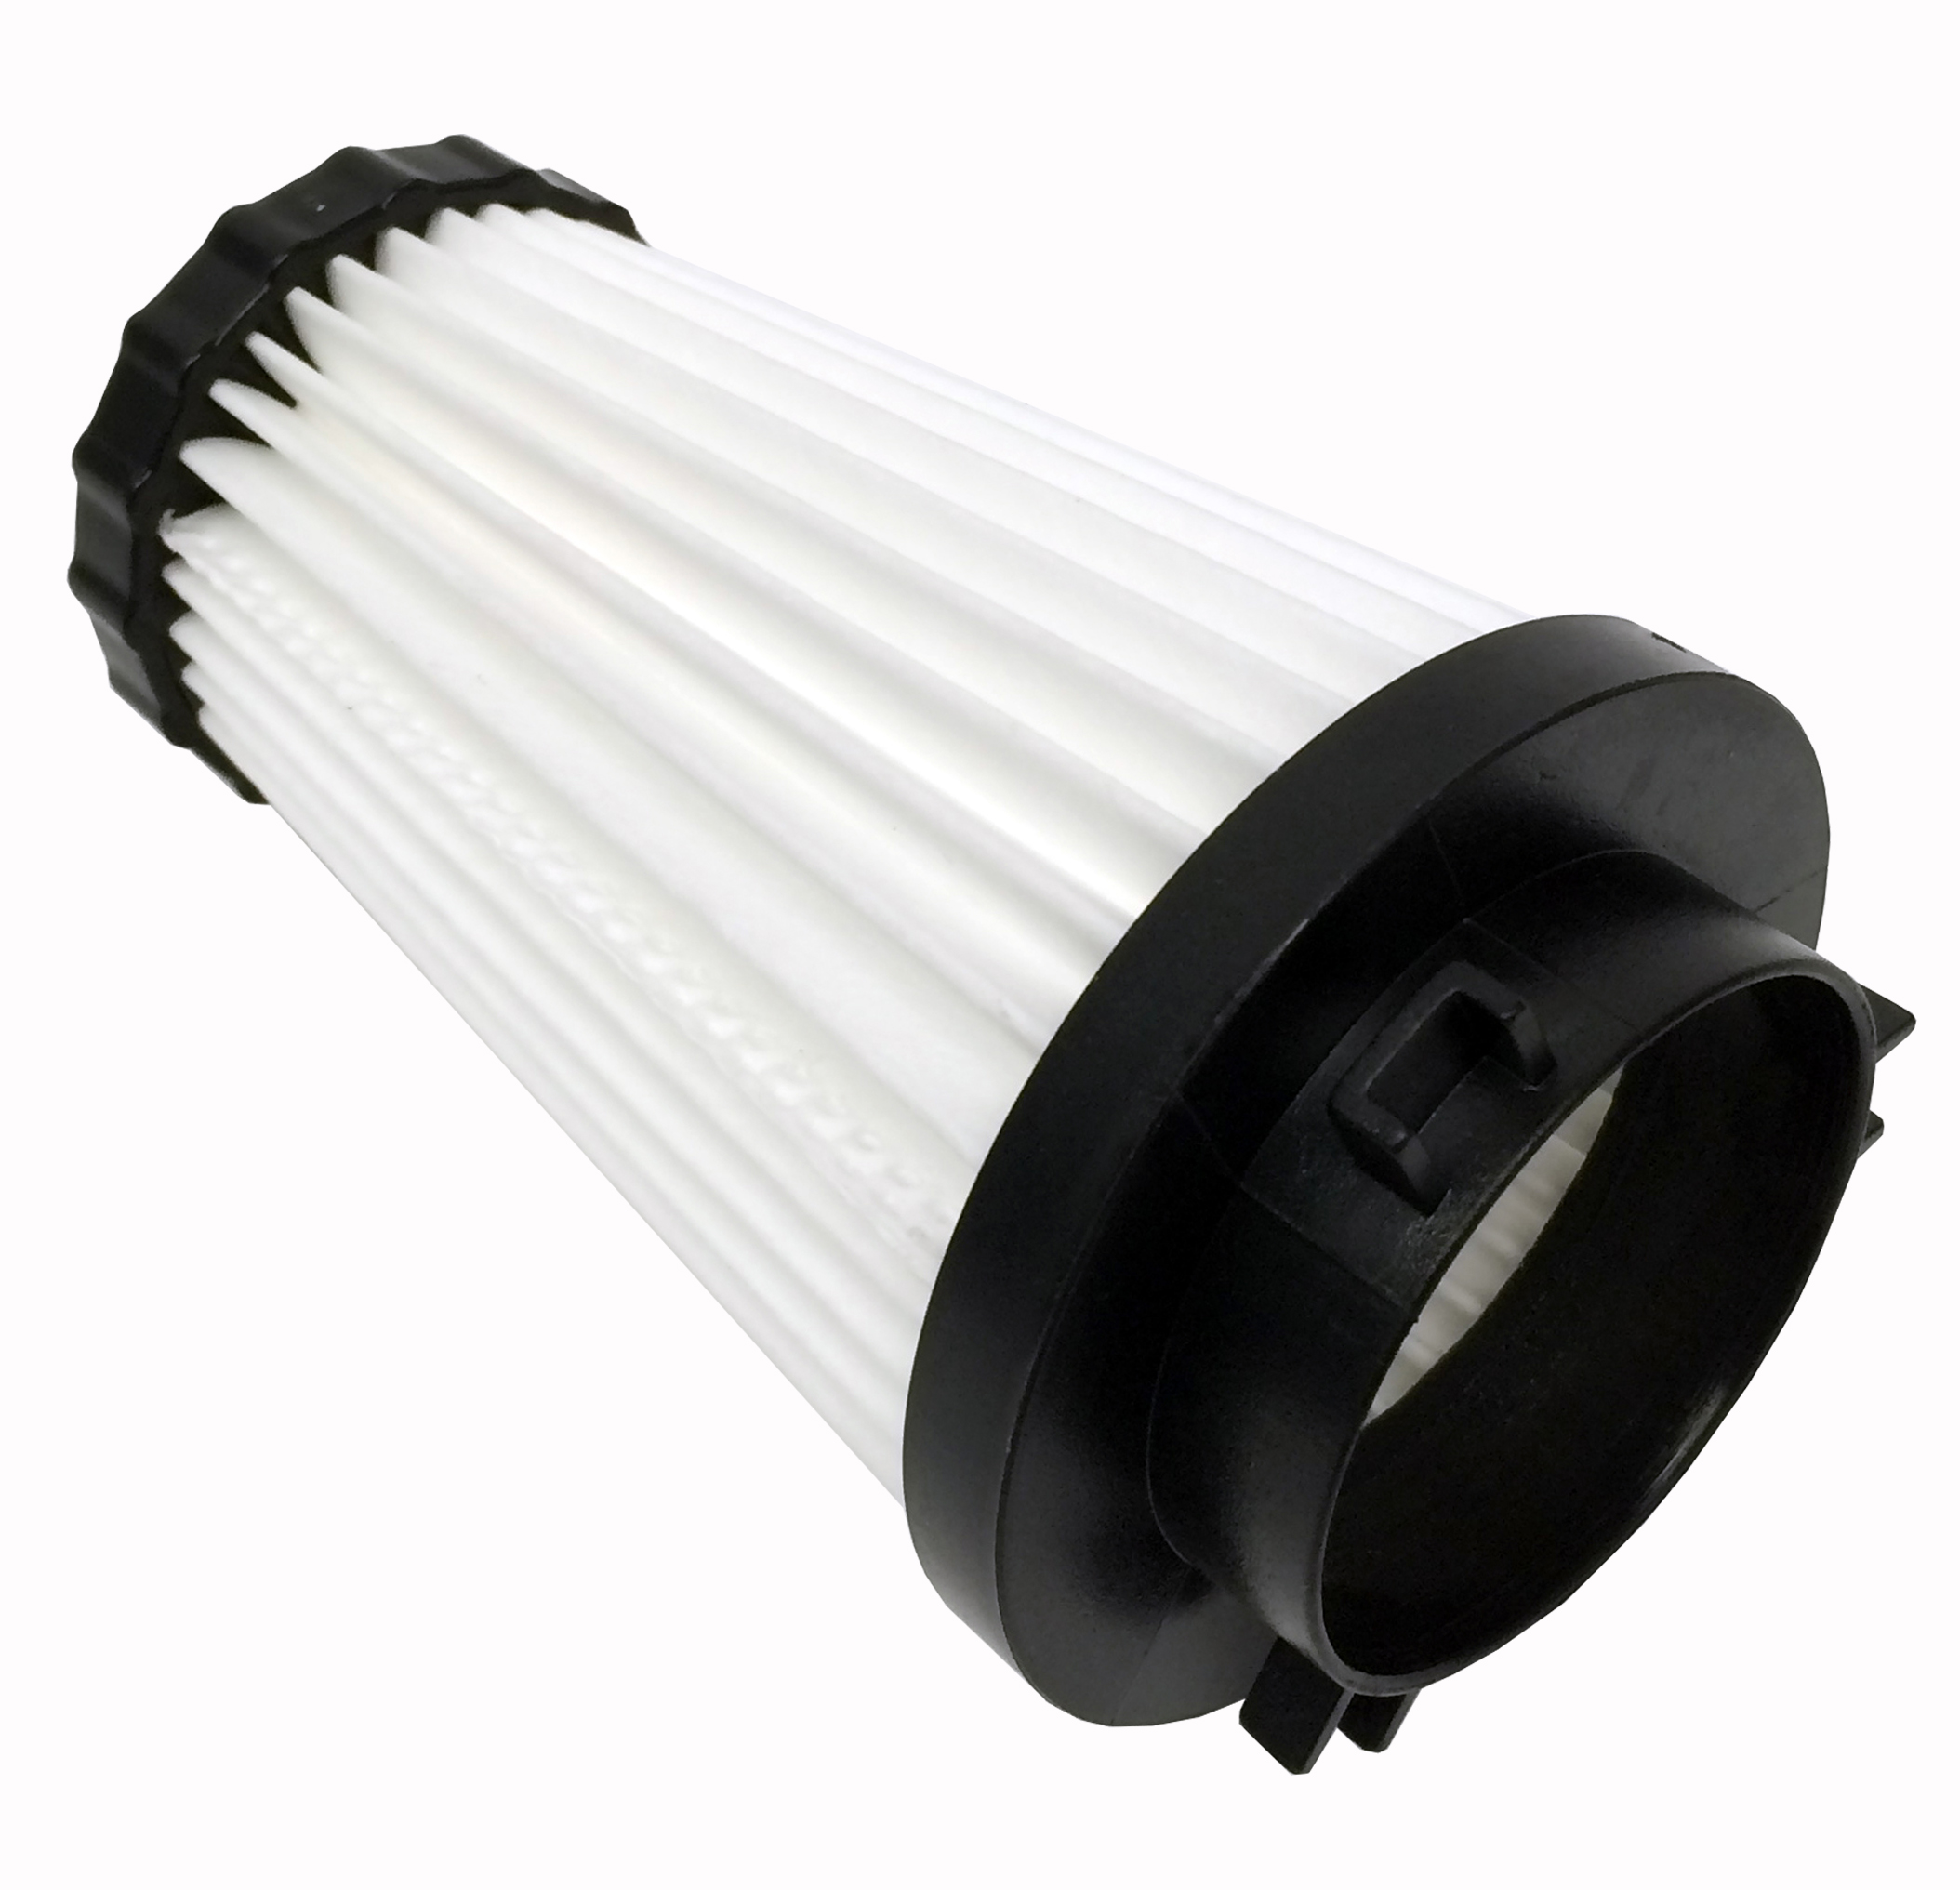 Washable Hepa Filter Designed to Fit Dirt Devil F2 Model Vacuum Cleaner